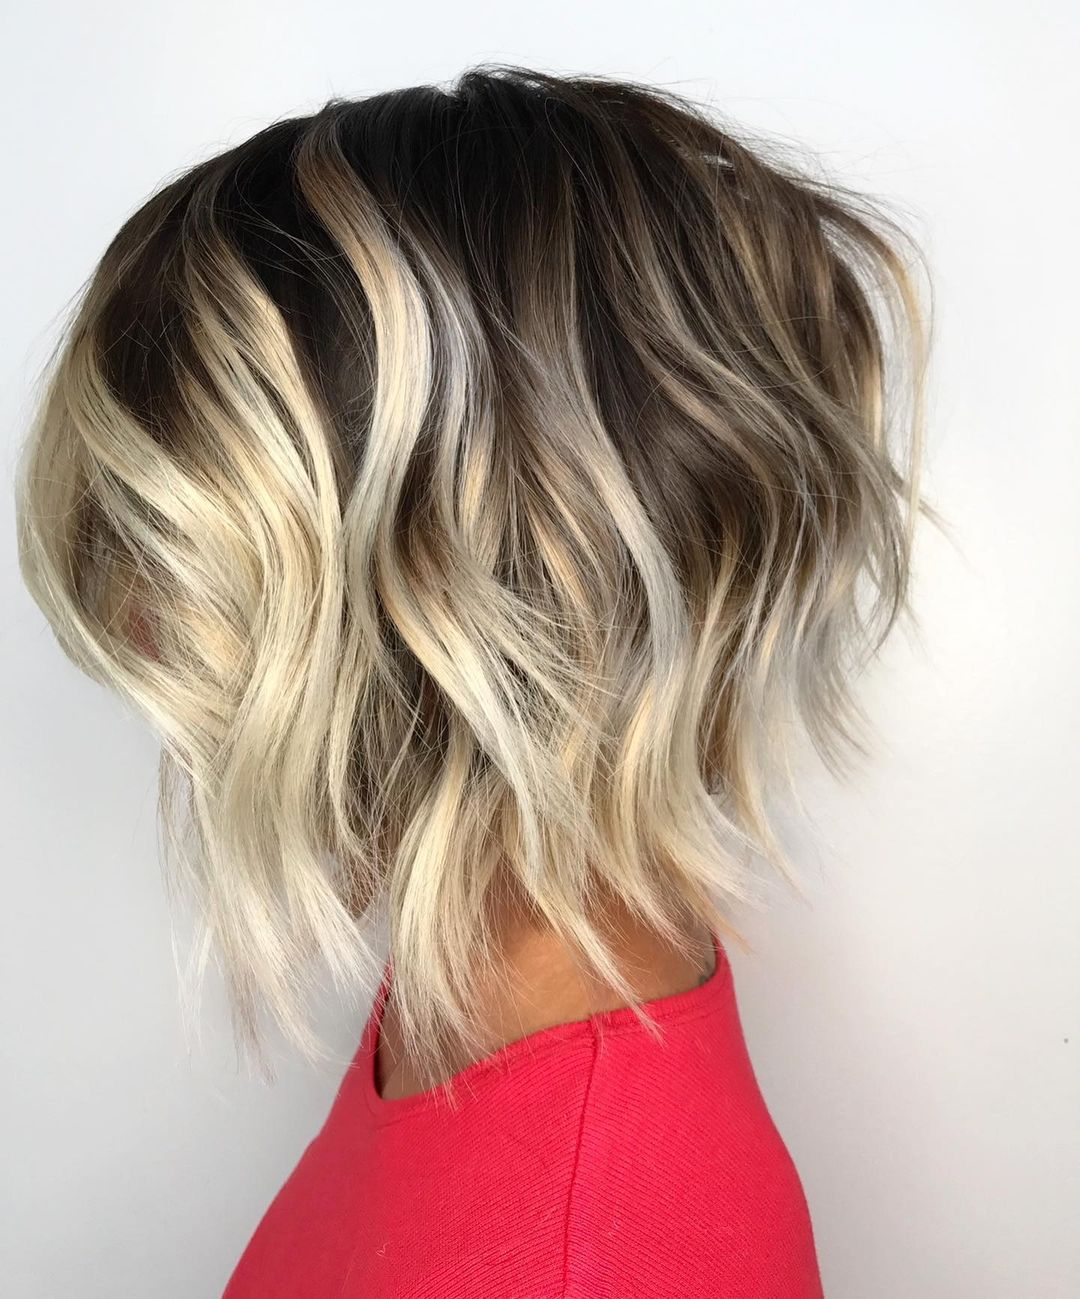 Messy Inverted Dirty Blonde Bob